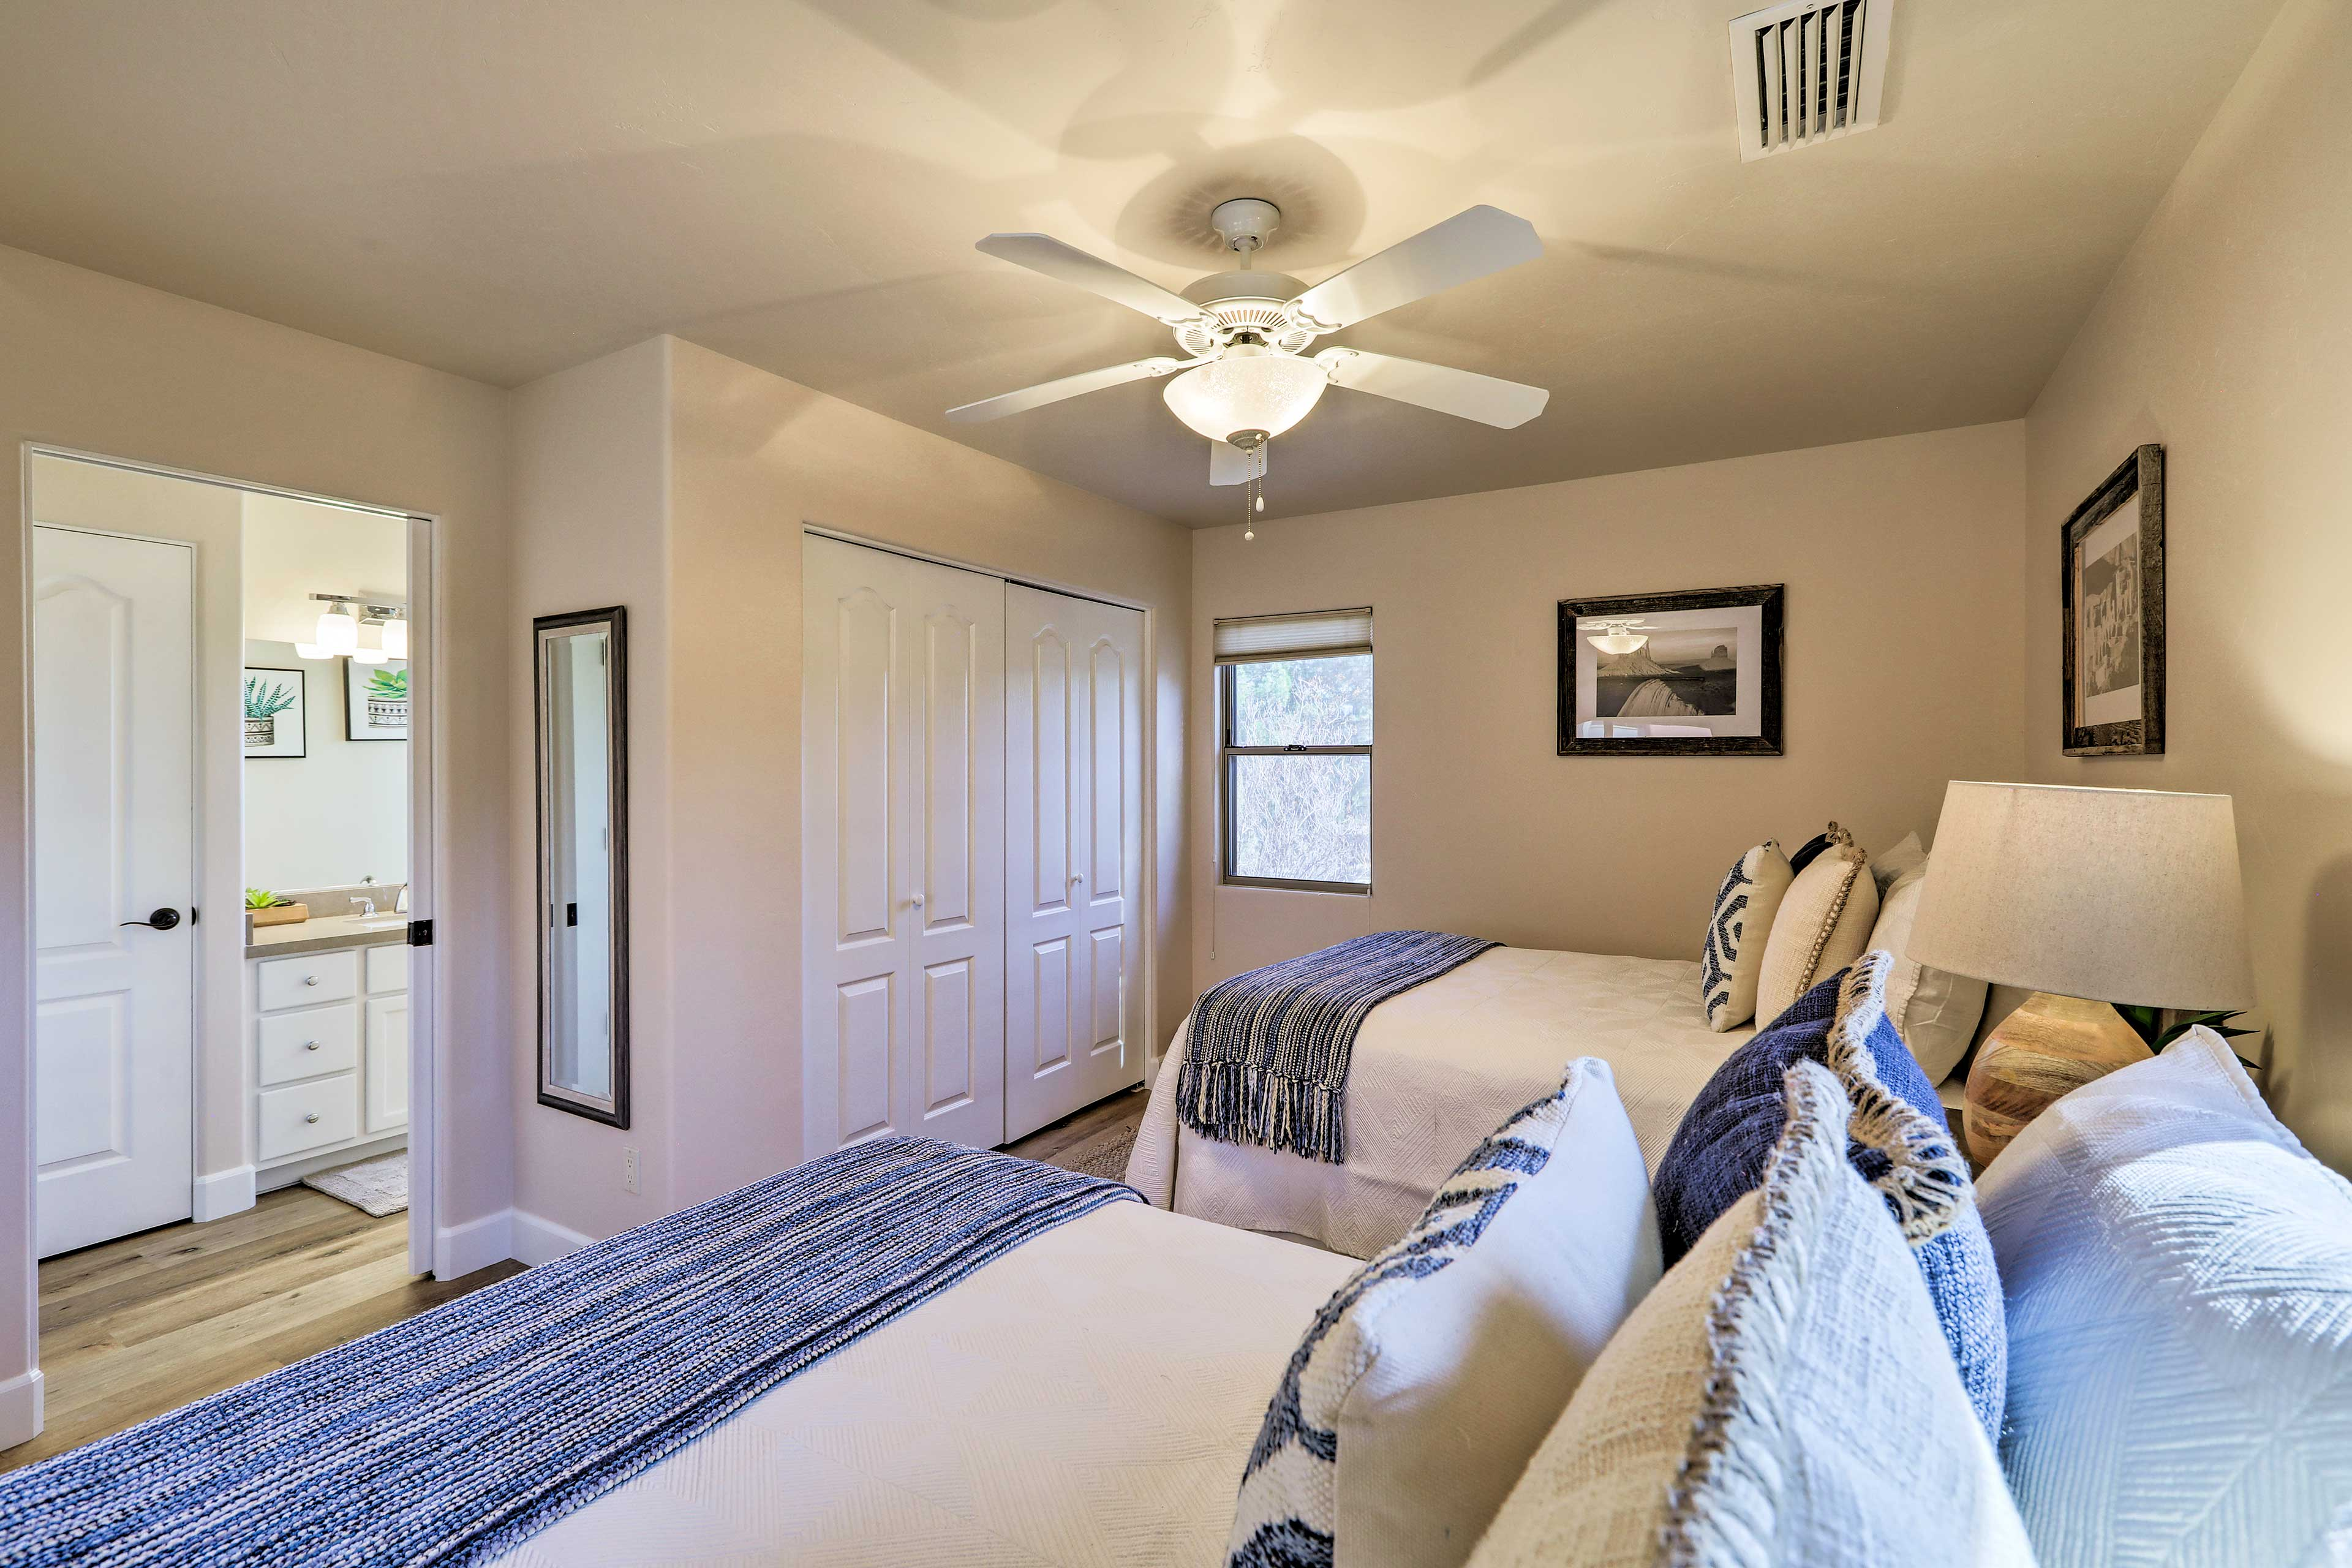 Central A/C and ceiling fans are sure to keep you cool.